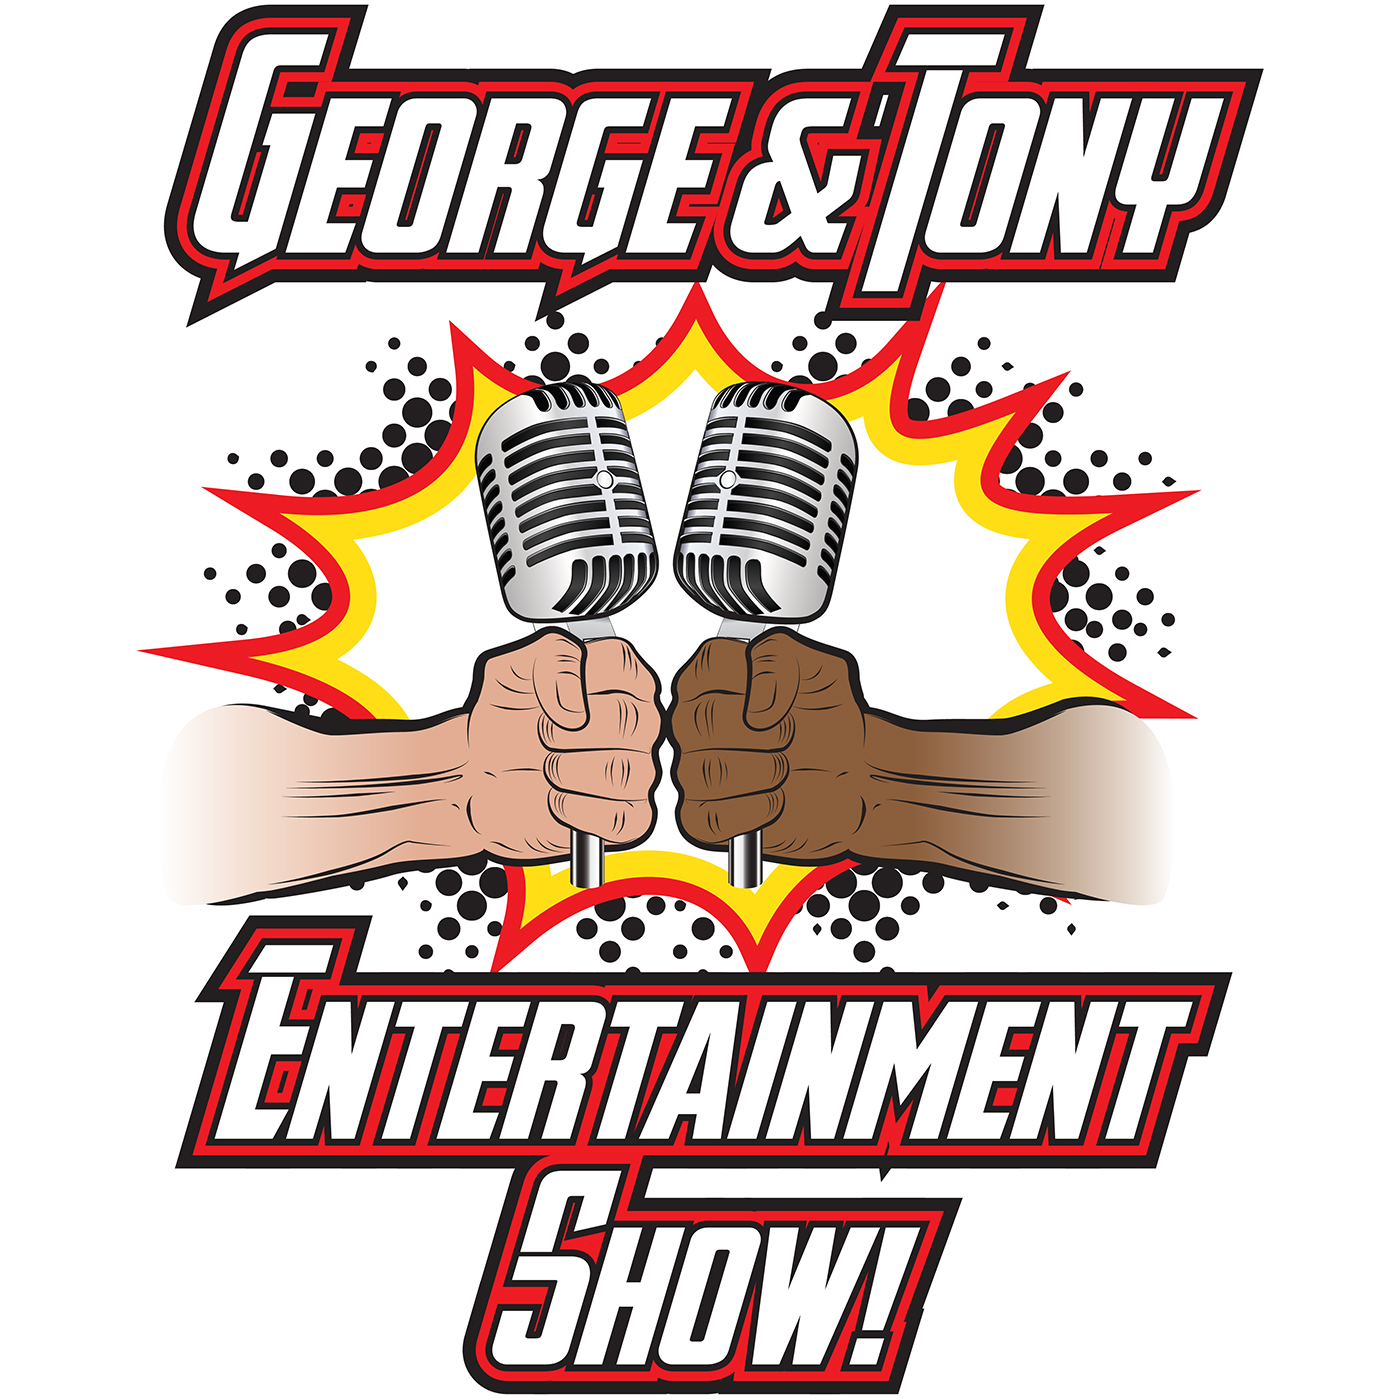 George and Tony Entertainment Show #142